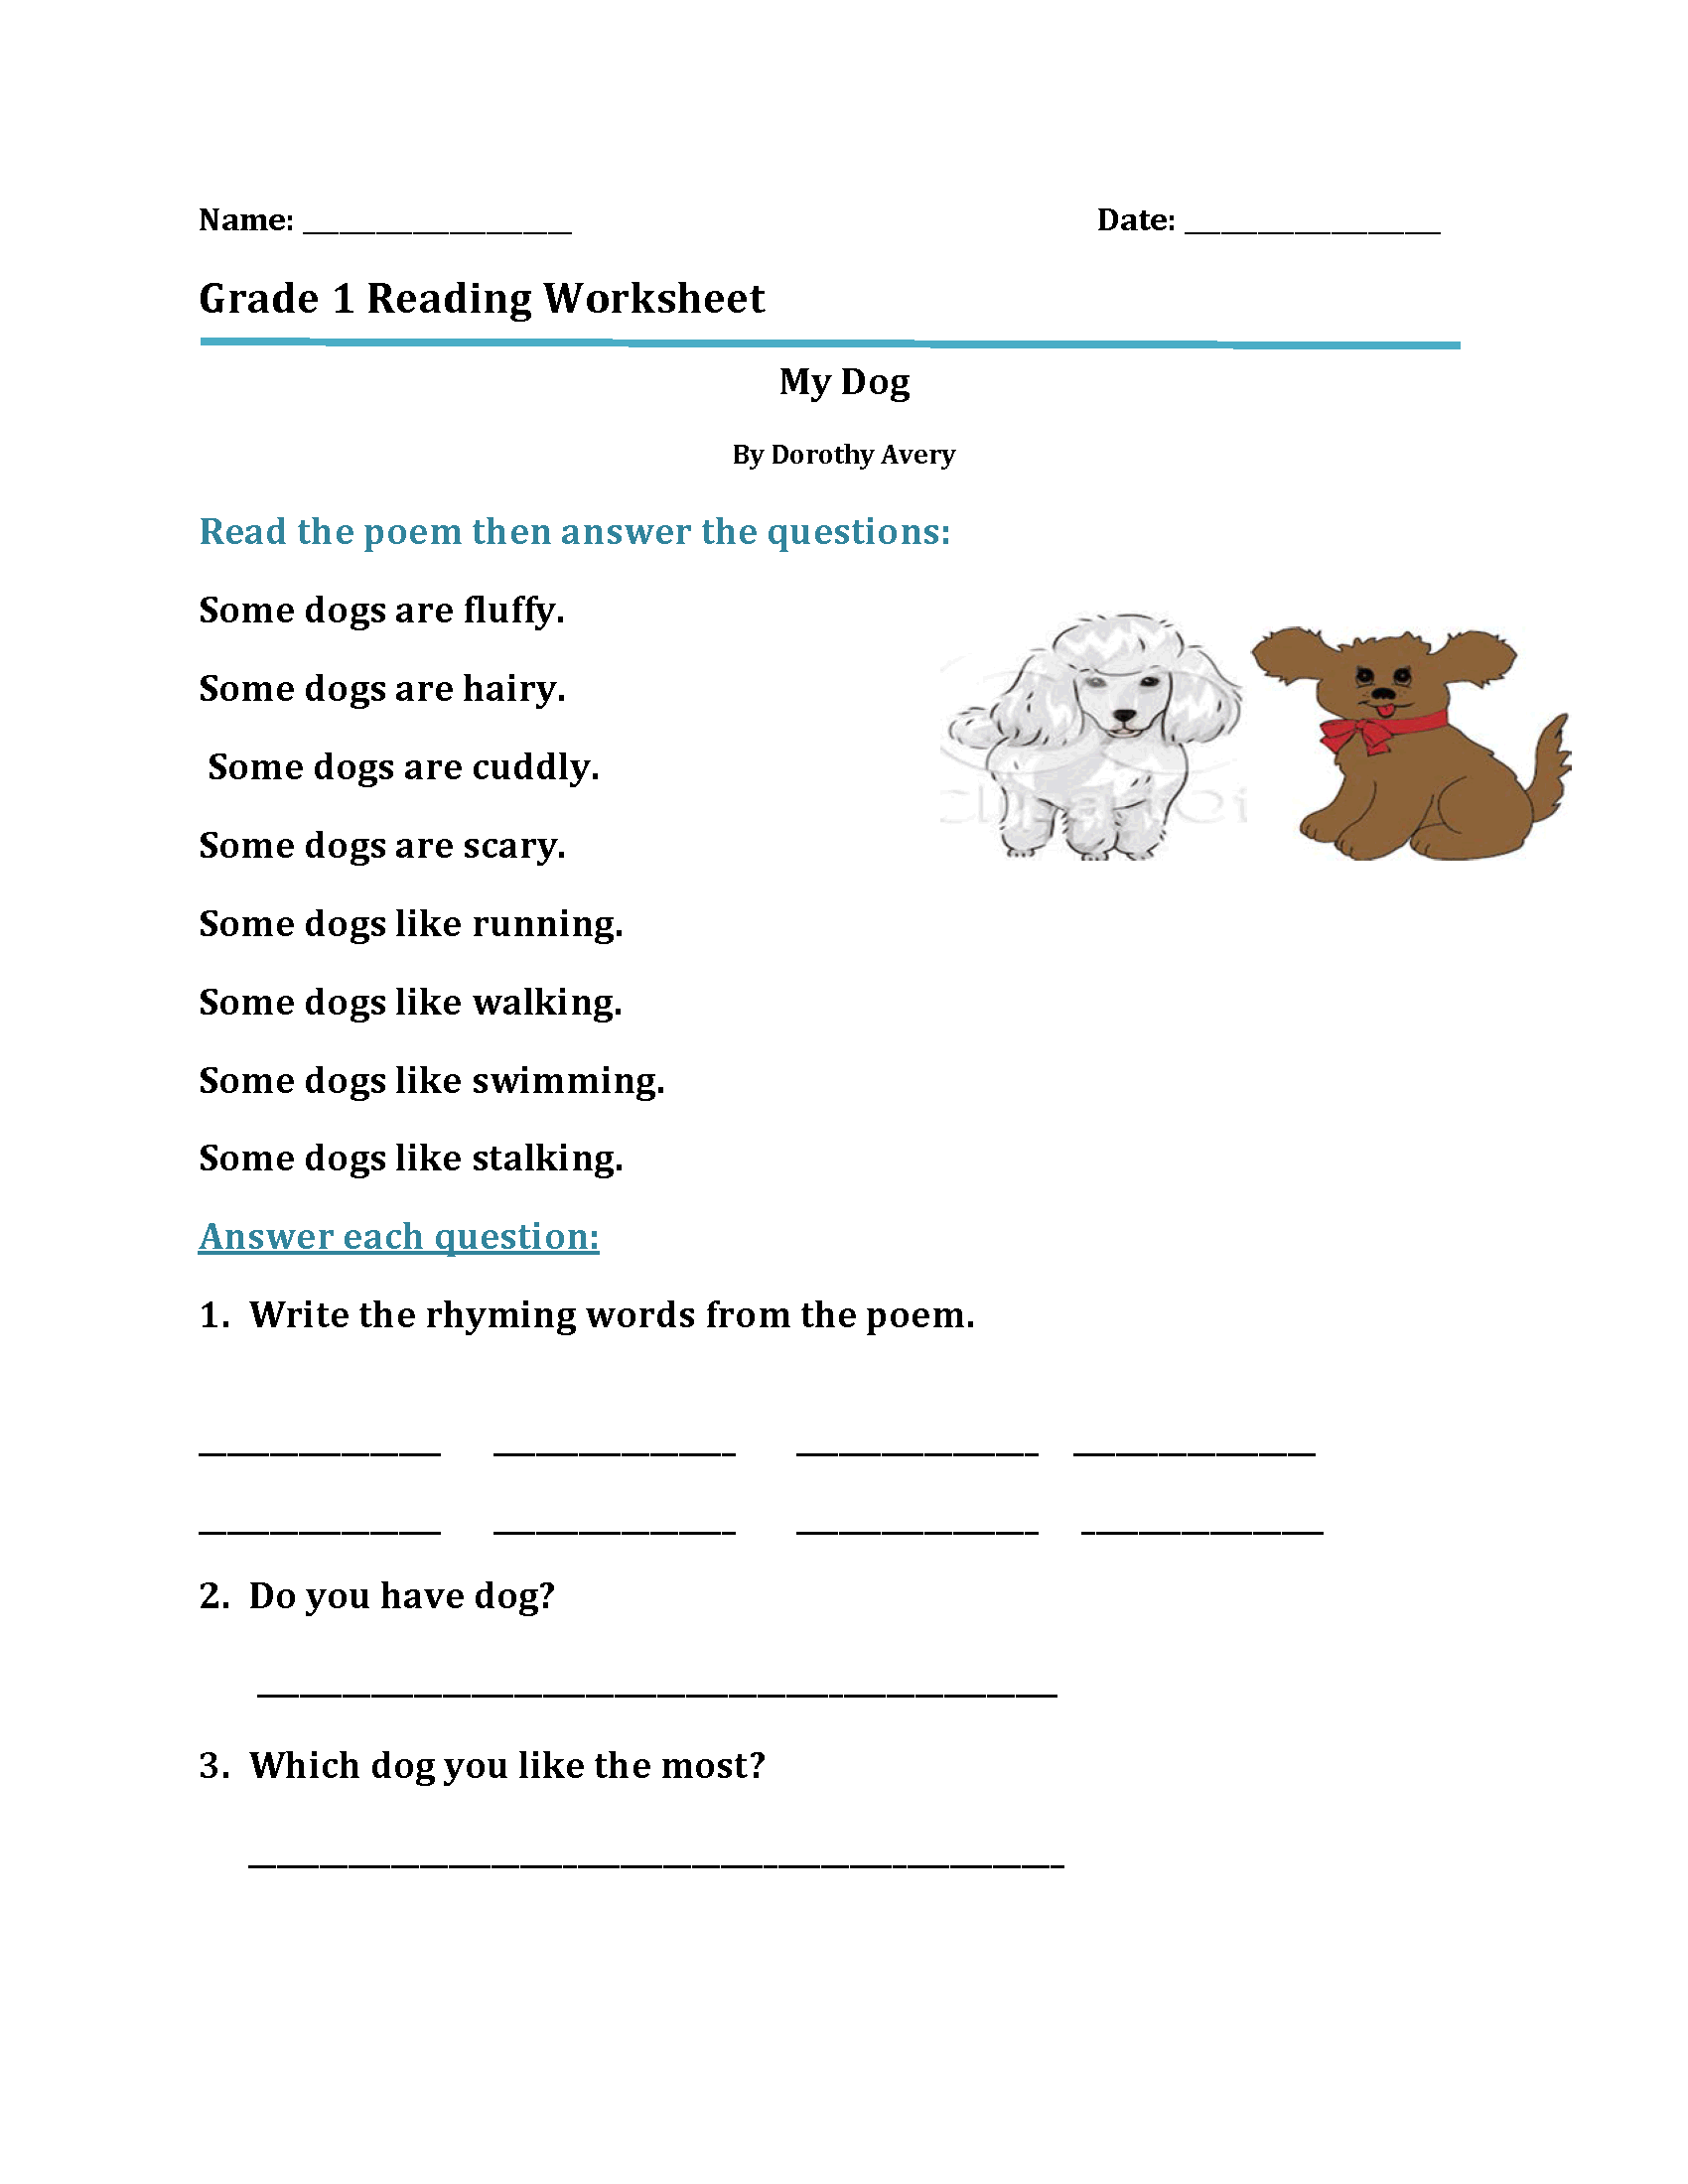 medium resolution of Printable Reading Worksheets for Grade 1   K5 Worksheets   Reading  worksheets